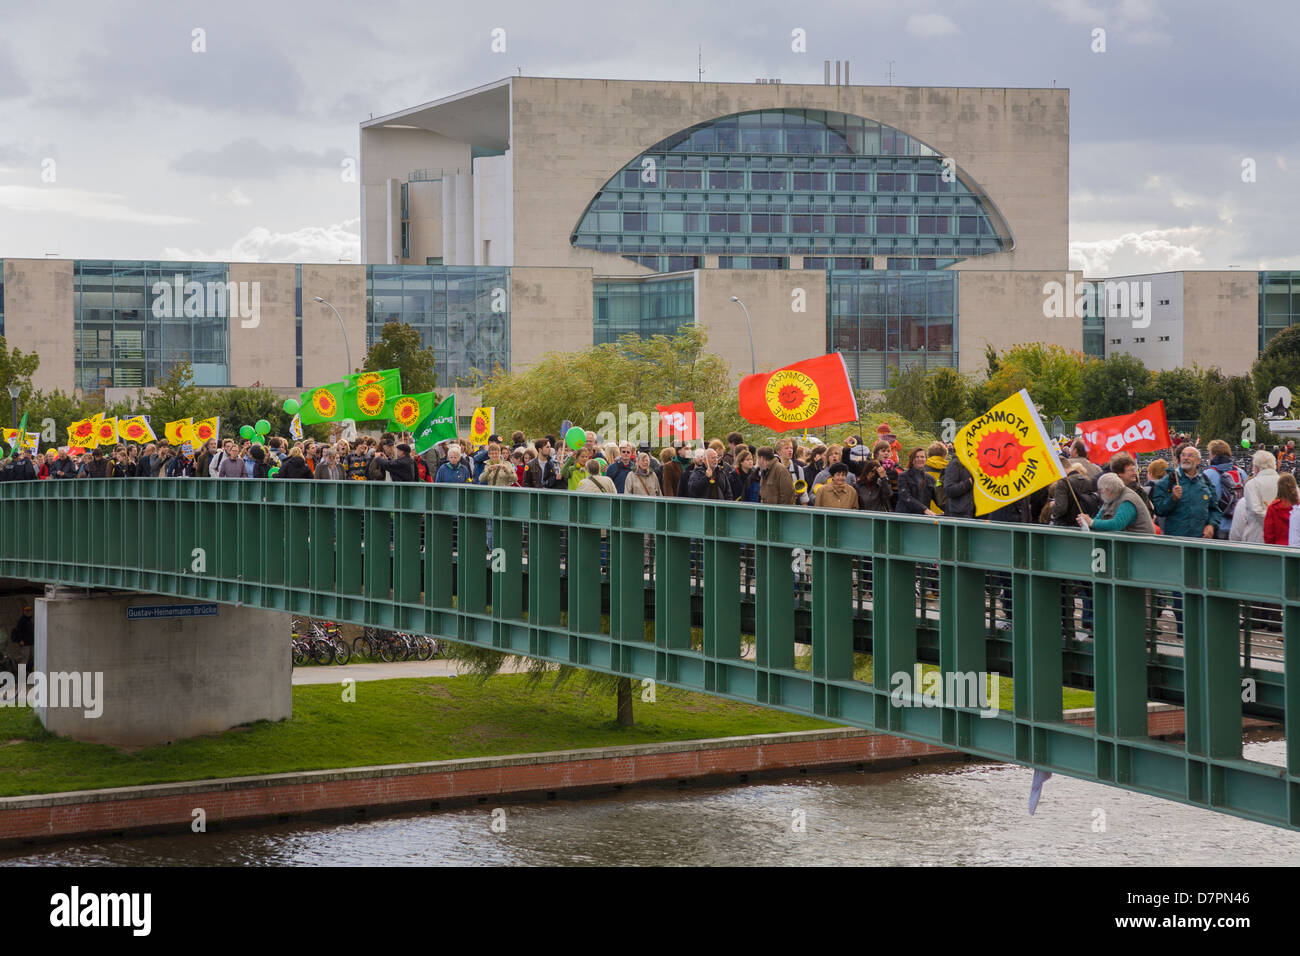 anti-nuclear demonstration in government district, here in front of the chancellery, Berlin Stock Photo